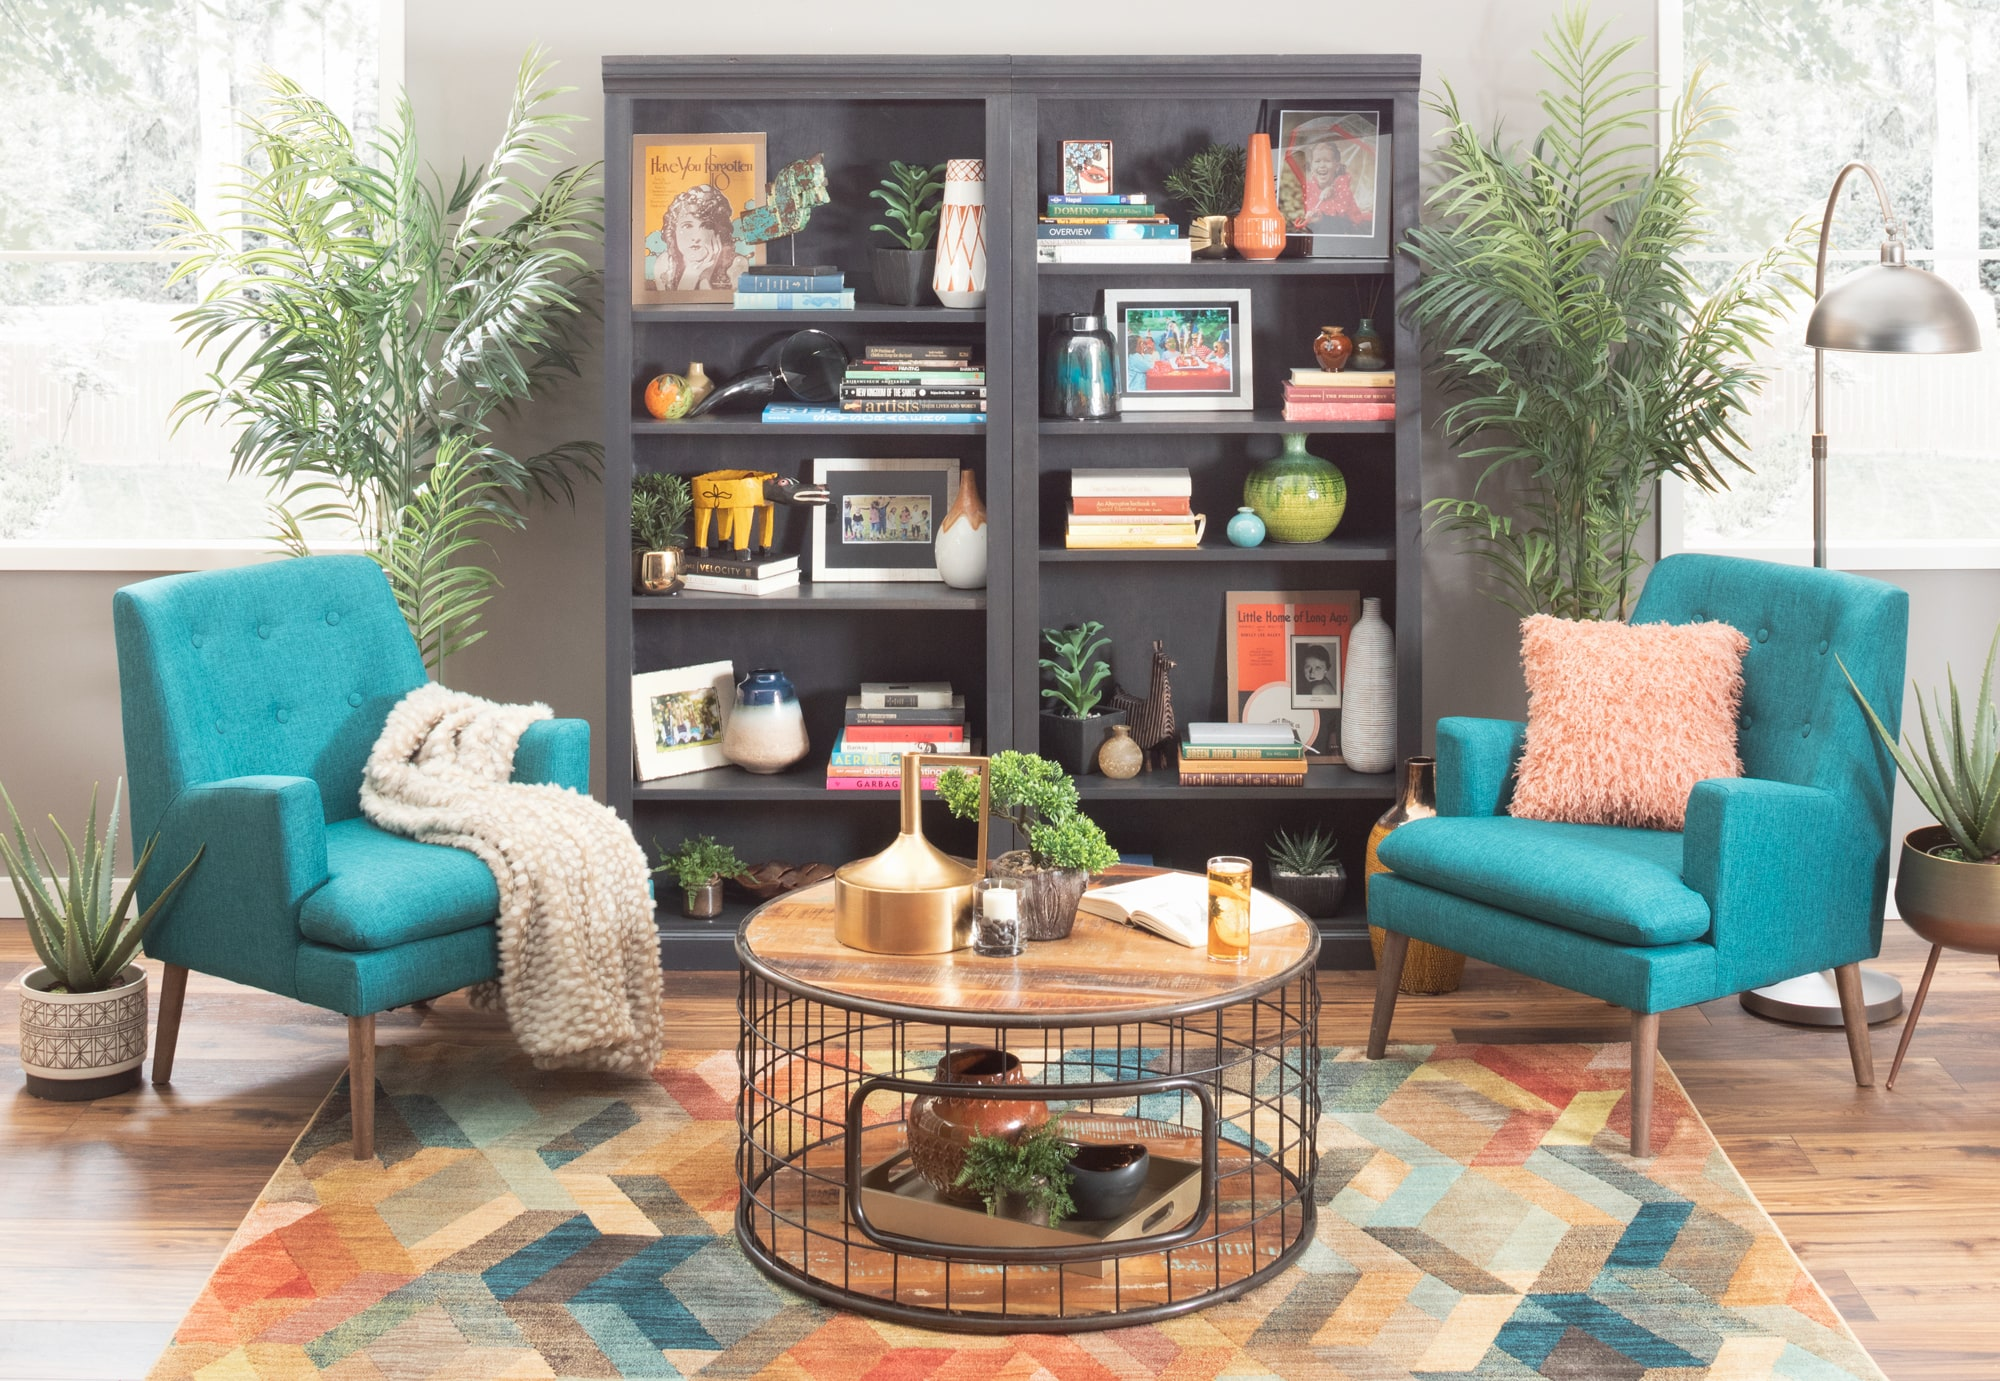 Eclectic one-of-a-kind reading nook